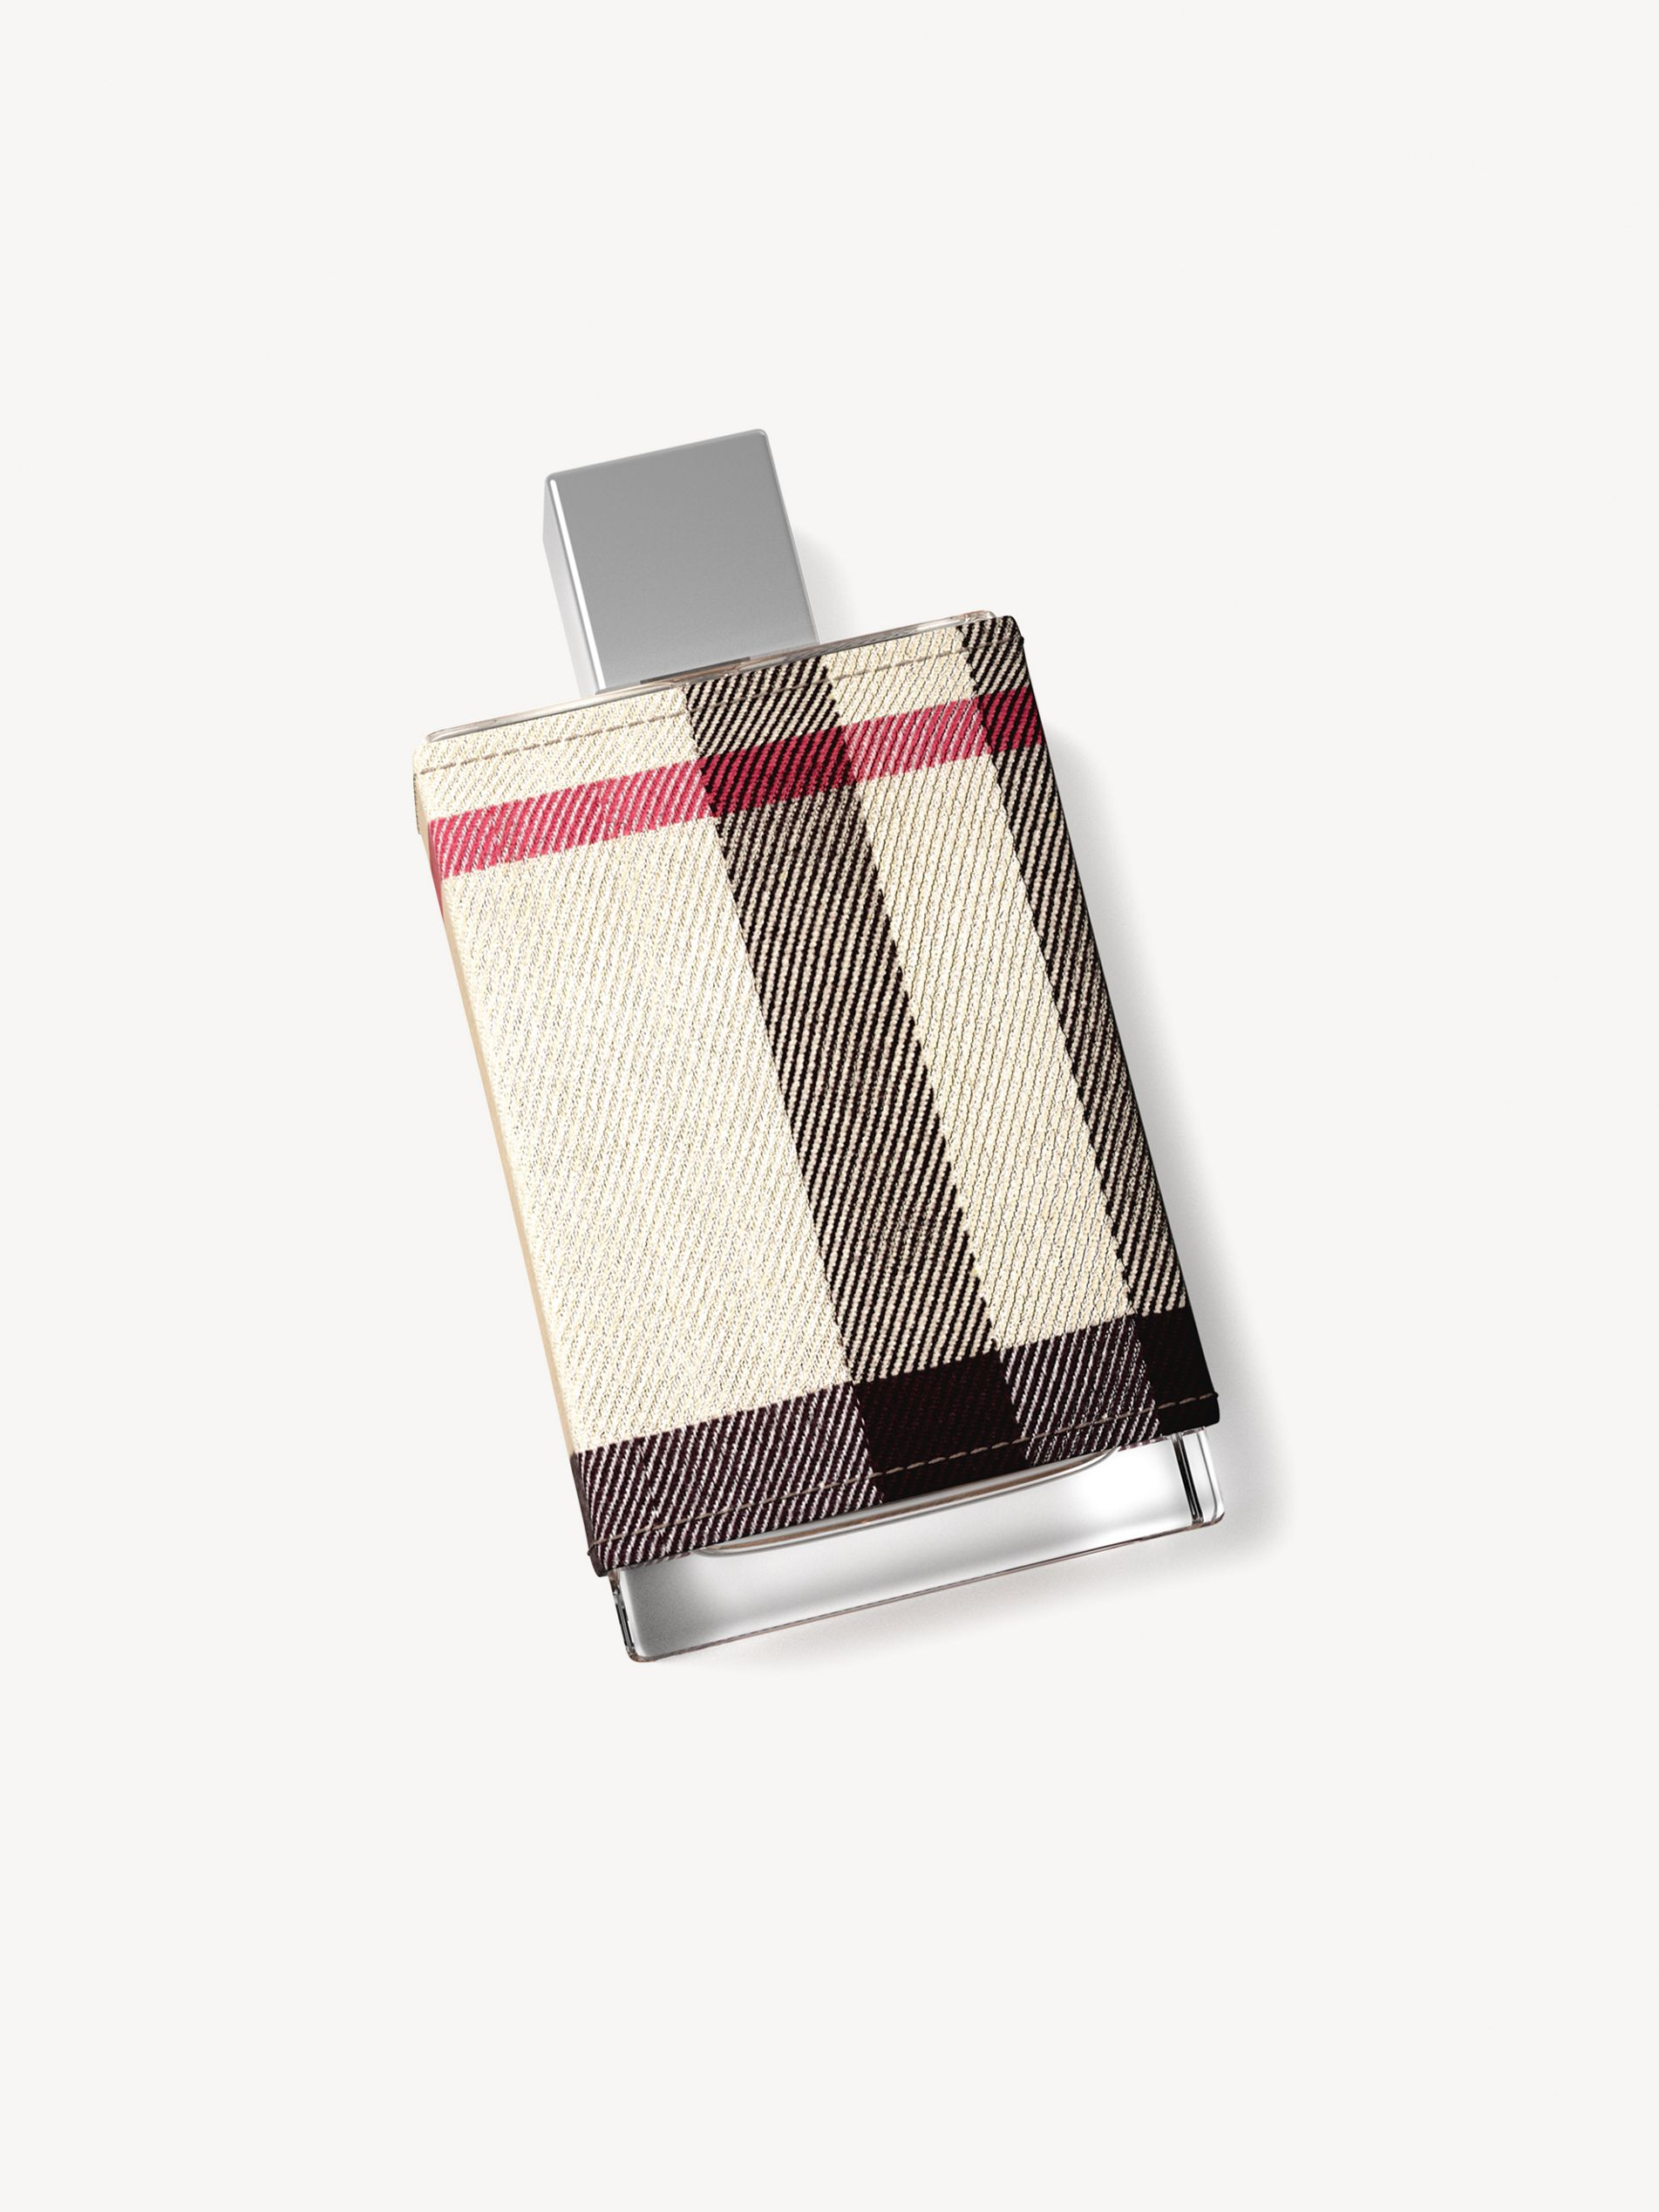 Burberry London 博柏利伦敦女士香水 100ml 产品图片01